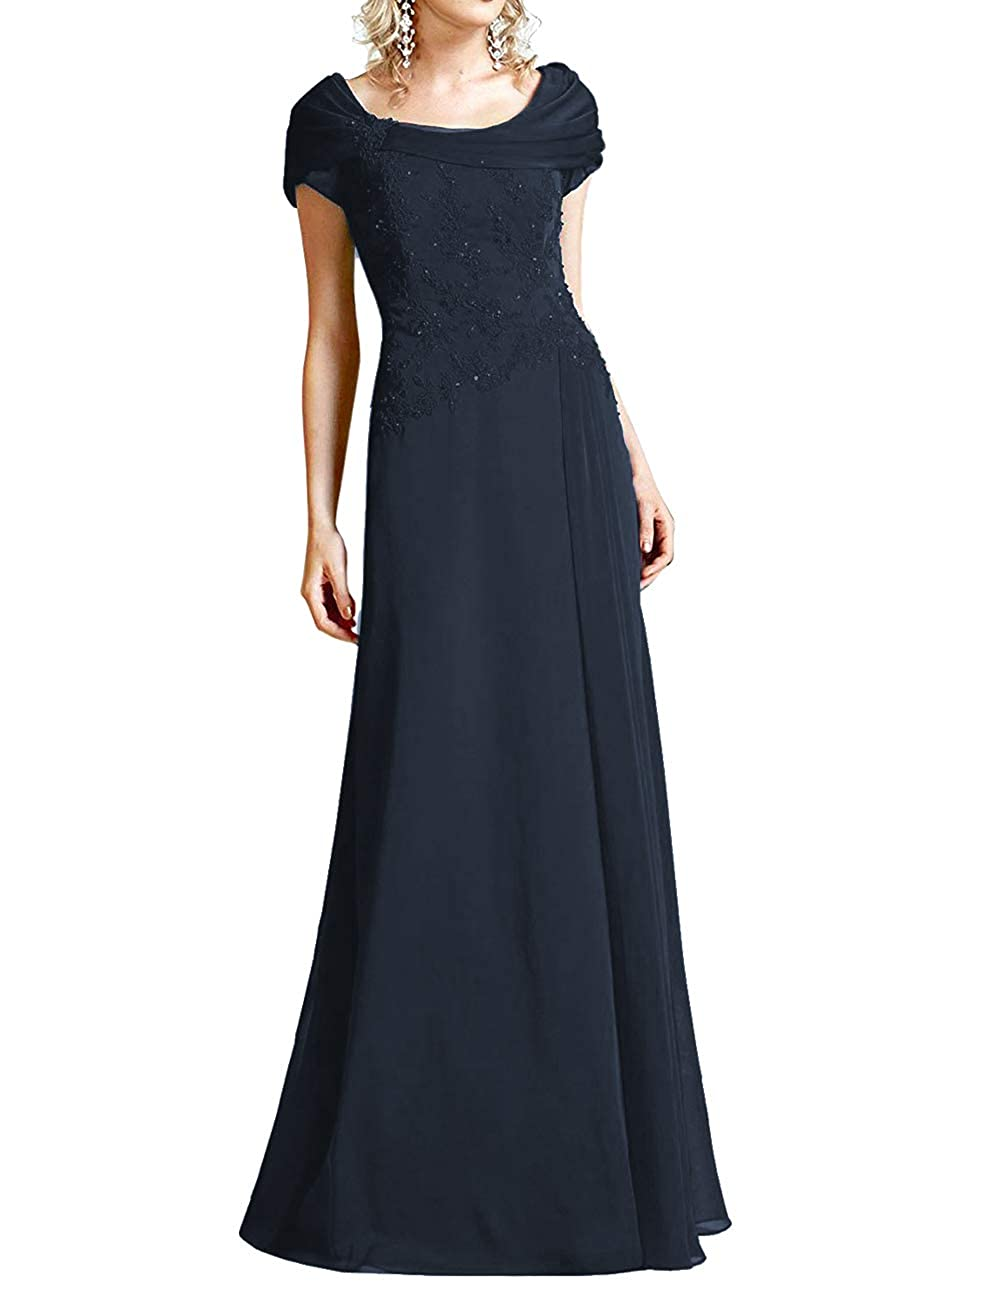 Dark Navy H.S.D Mother of The Bride Dresses Lace Formal Gowns Long Evening Dress Prom Wrap Shawl